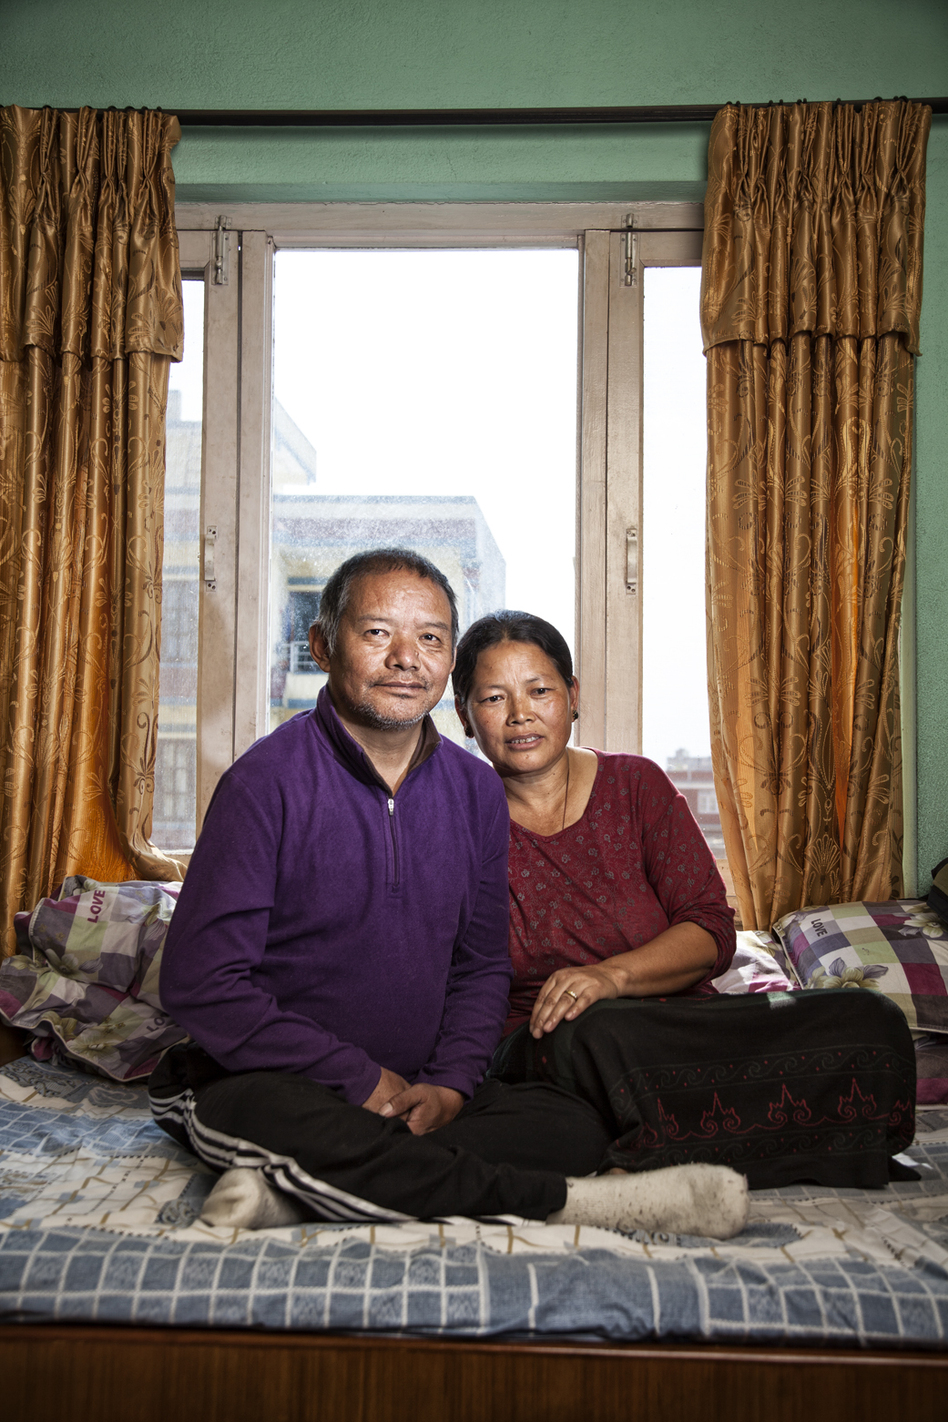 Ang Temba, 54, suffered a stroke on an Everest expedition in 2006. Against a doctor's advice, he went back to Everest in 2007 and had a second stroke shortly after returning. He's now confined to his bed and cannot speak. Here he sits with his wife, Furba, 48, in their Kathmandu, Nepal, apartment. (Courtesy of Grayson Schaffer)